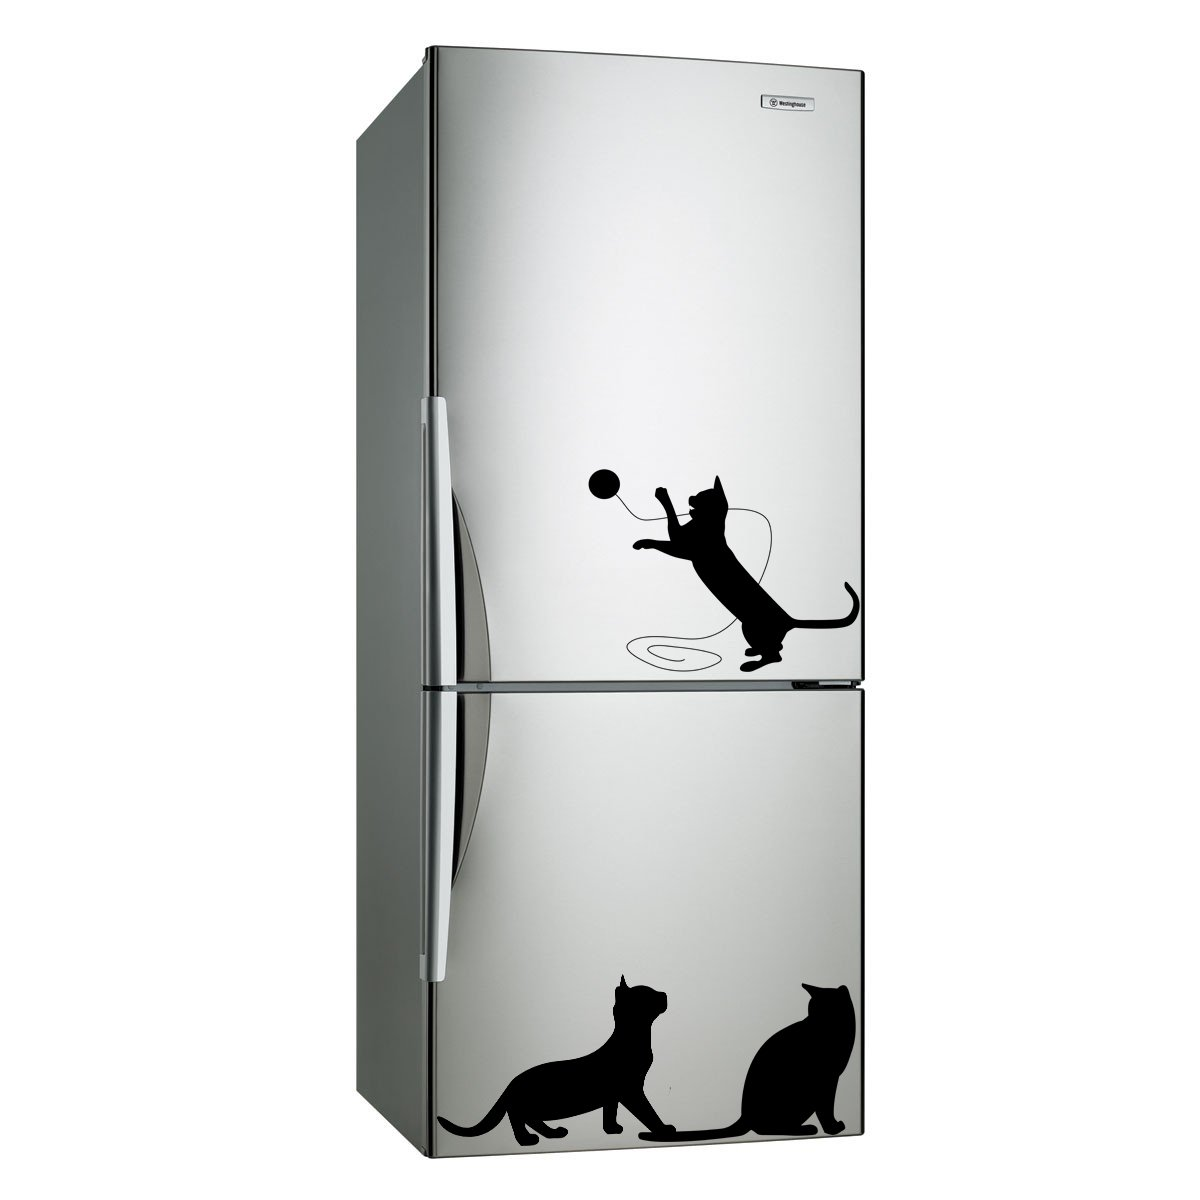 (12''x4'') Vinyl Wall Decal Cute Cats Playing / Happy 3 Kittens Art Decor Sticker + Free Decal Gift